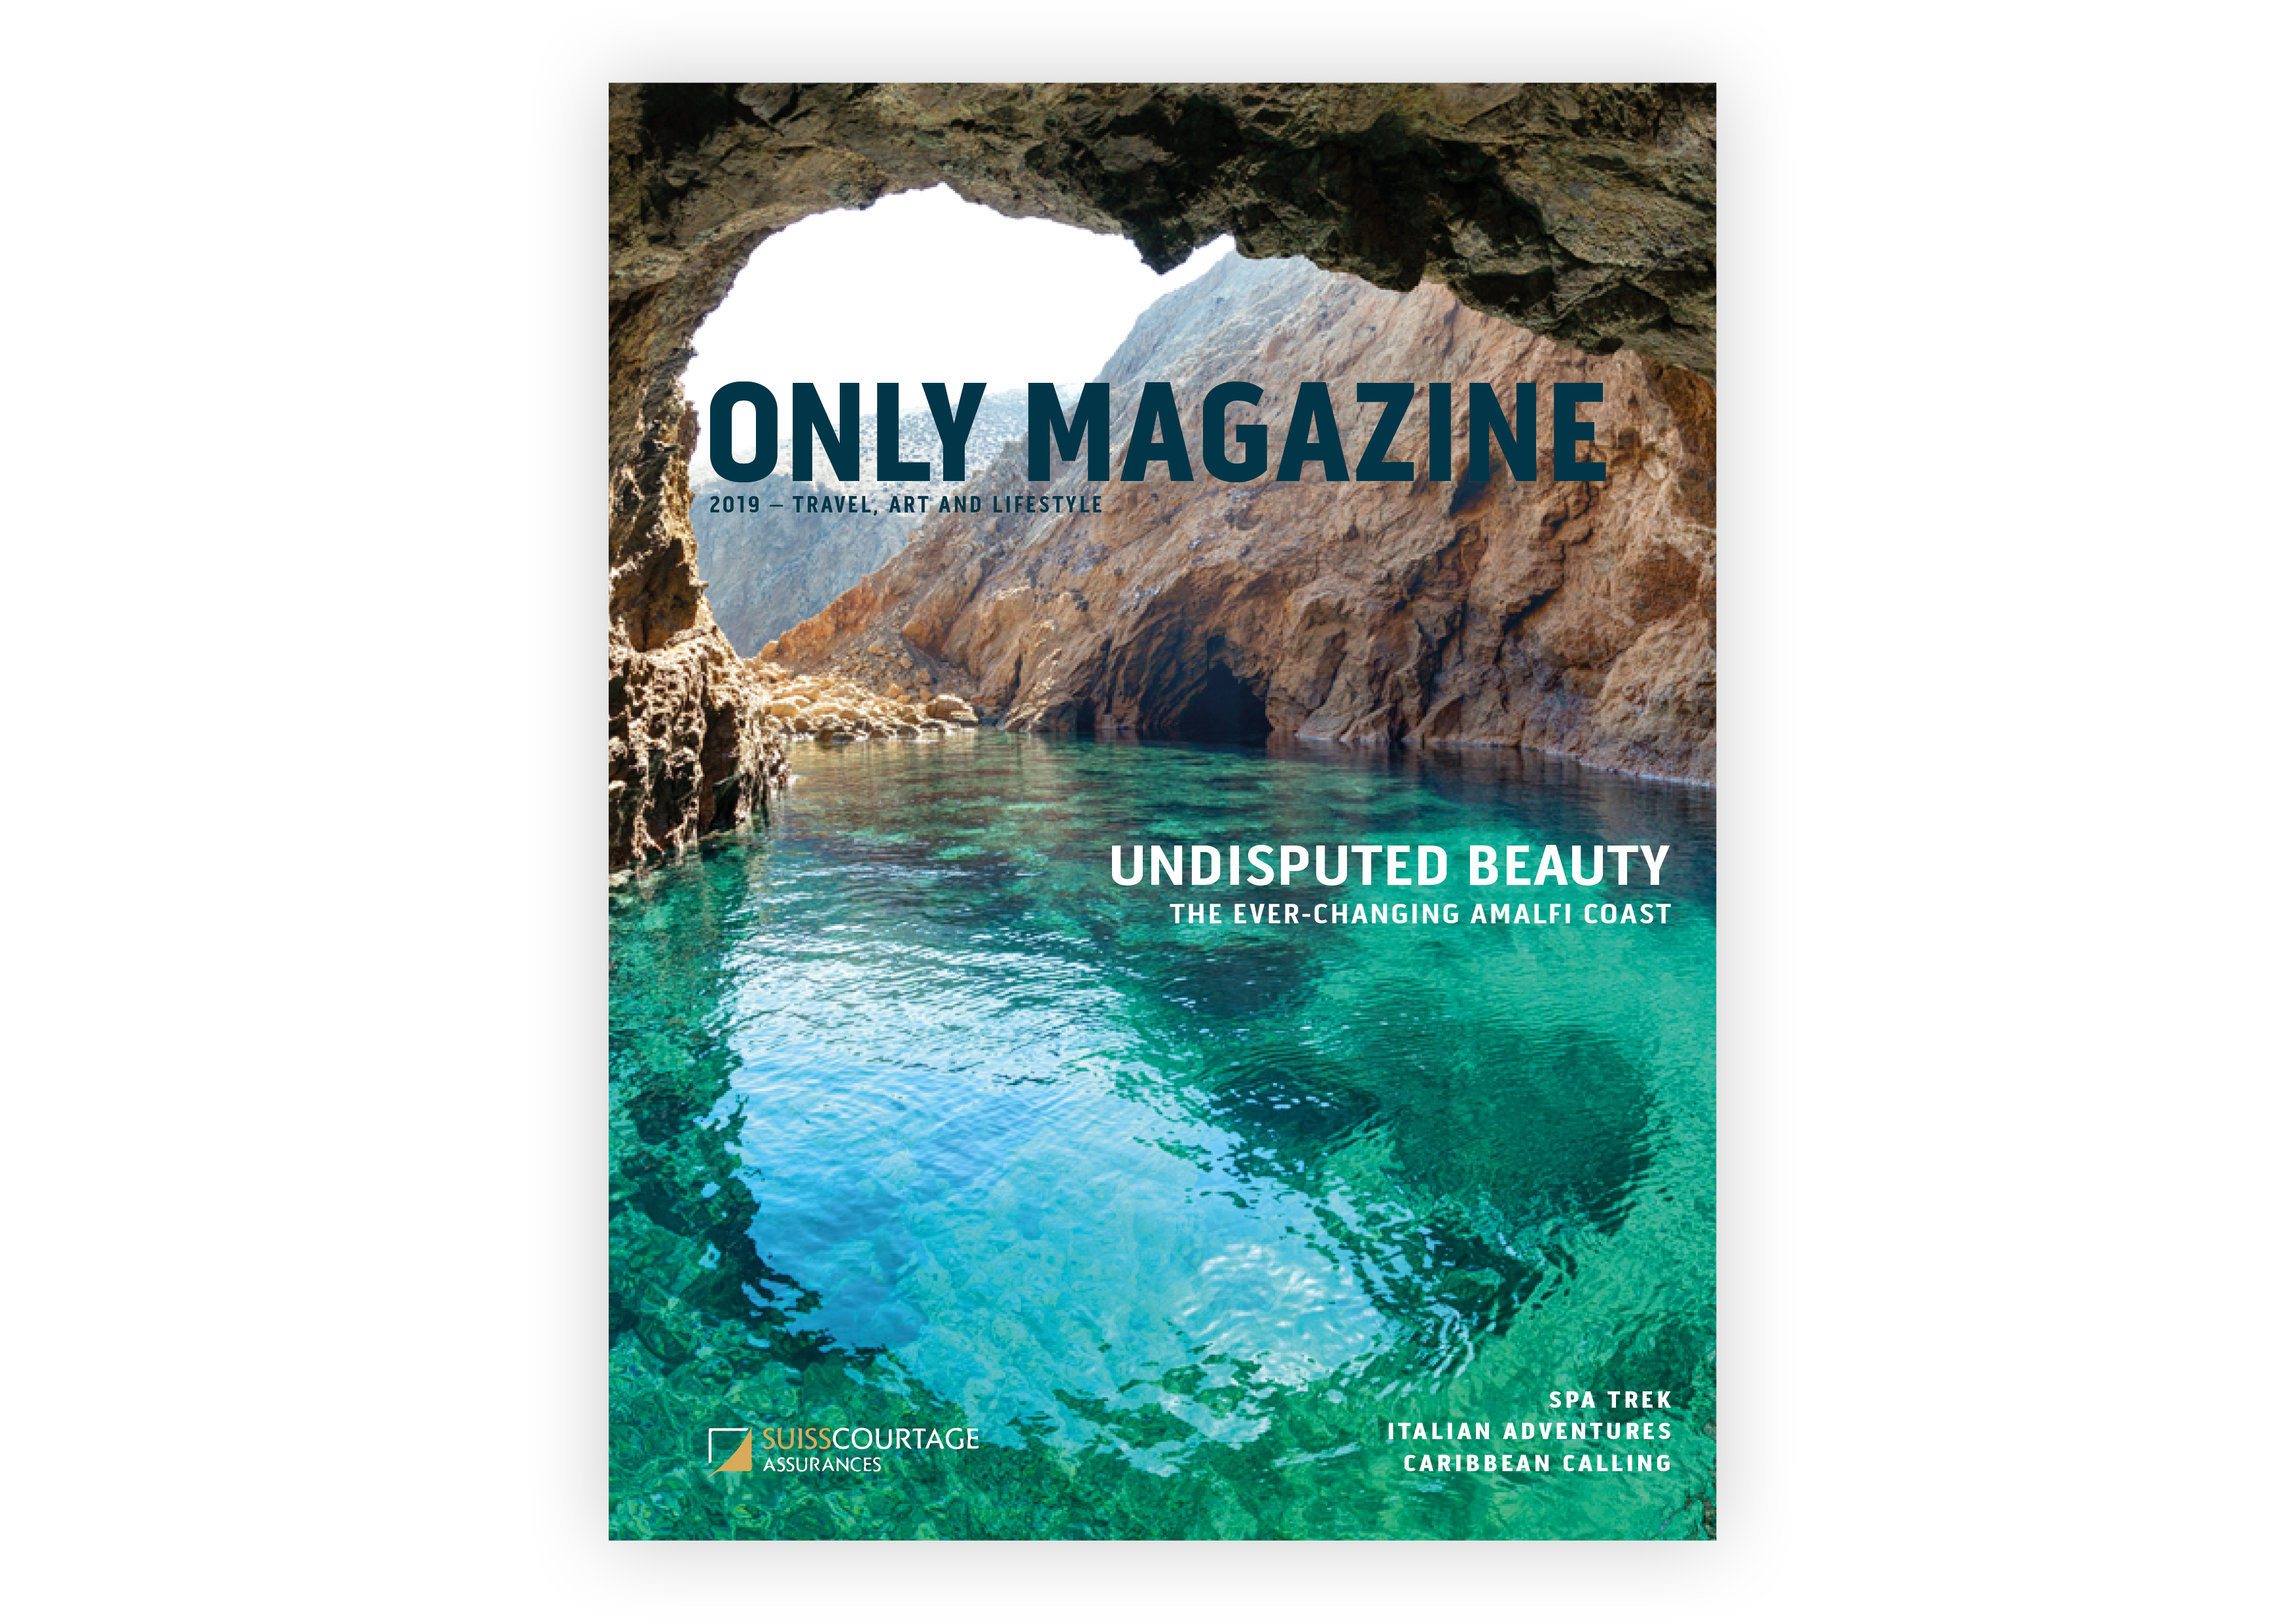 Only Magazine